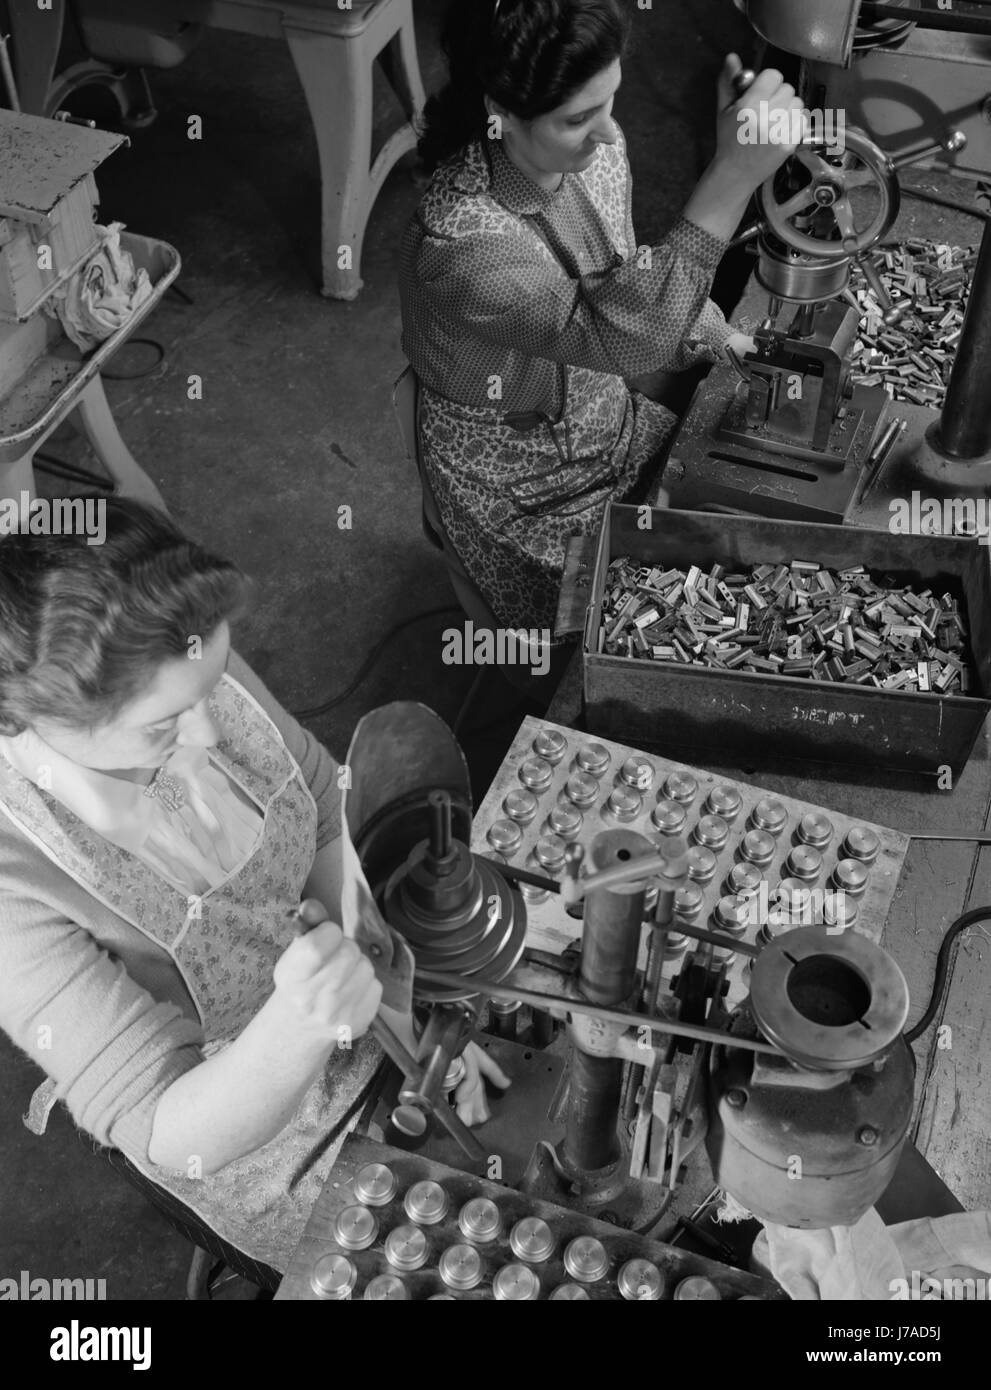 Female workers making parts to be used for war productions efforts, 1942. - Stock Image